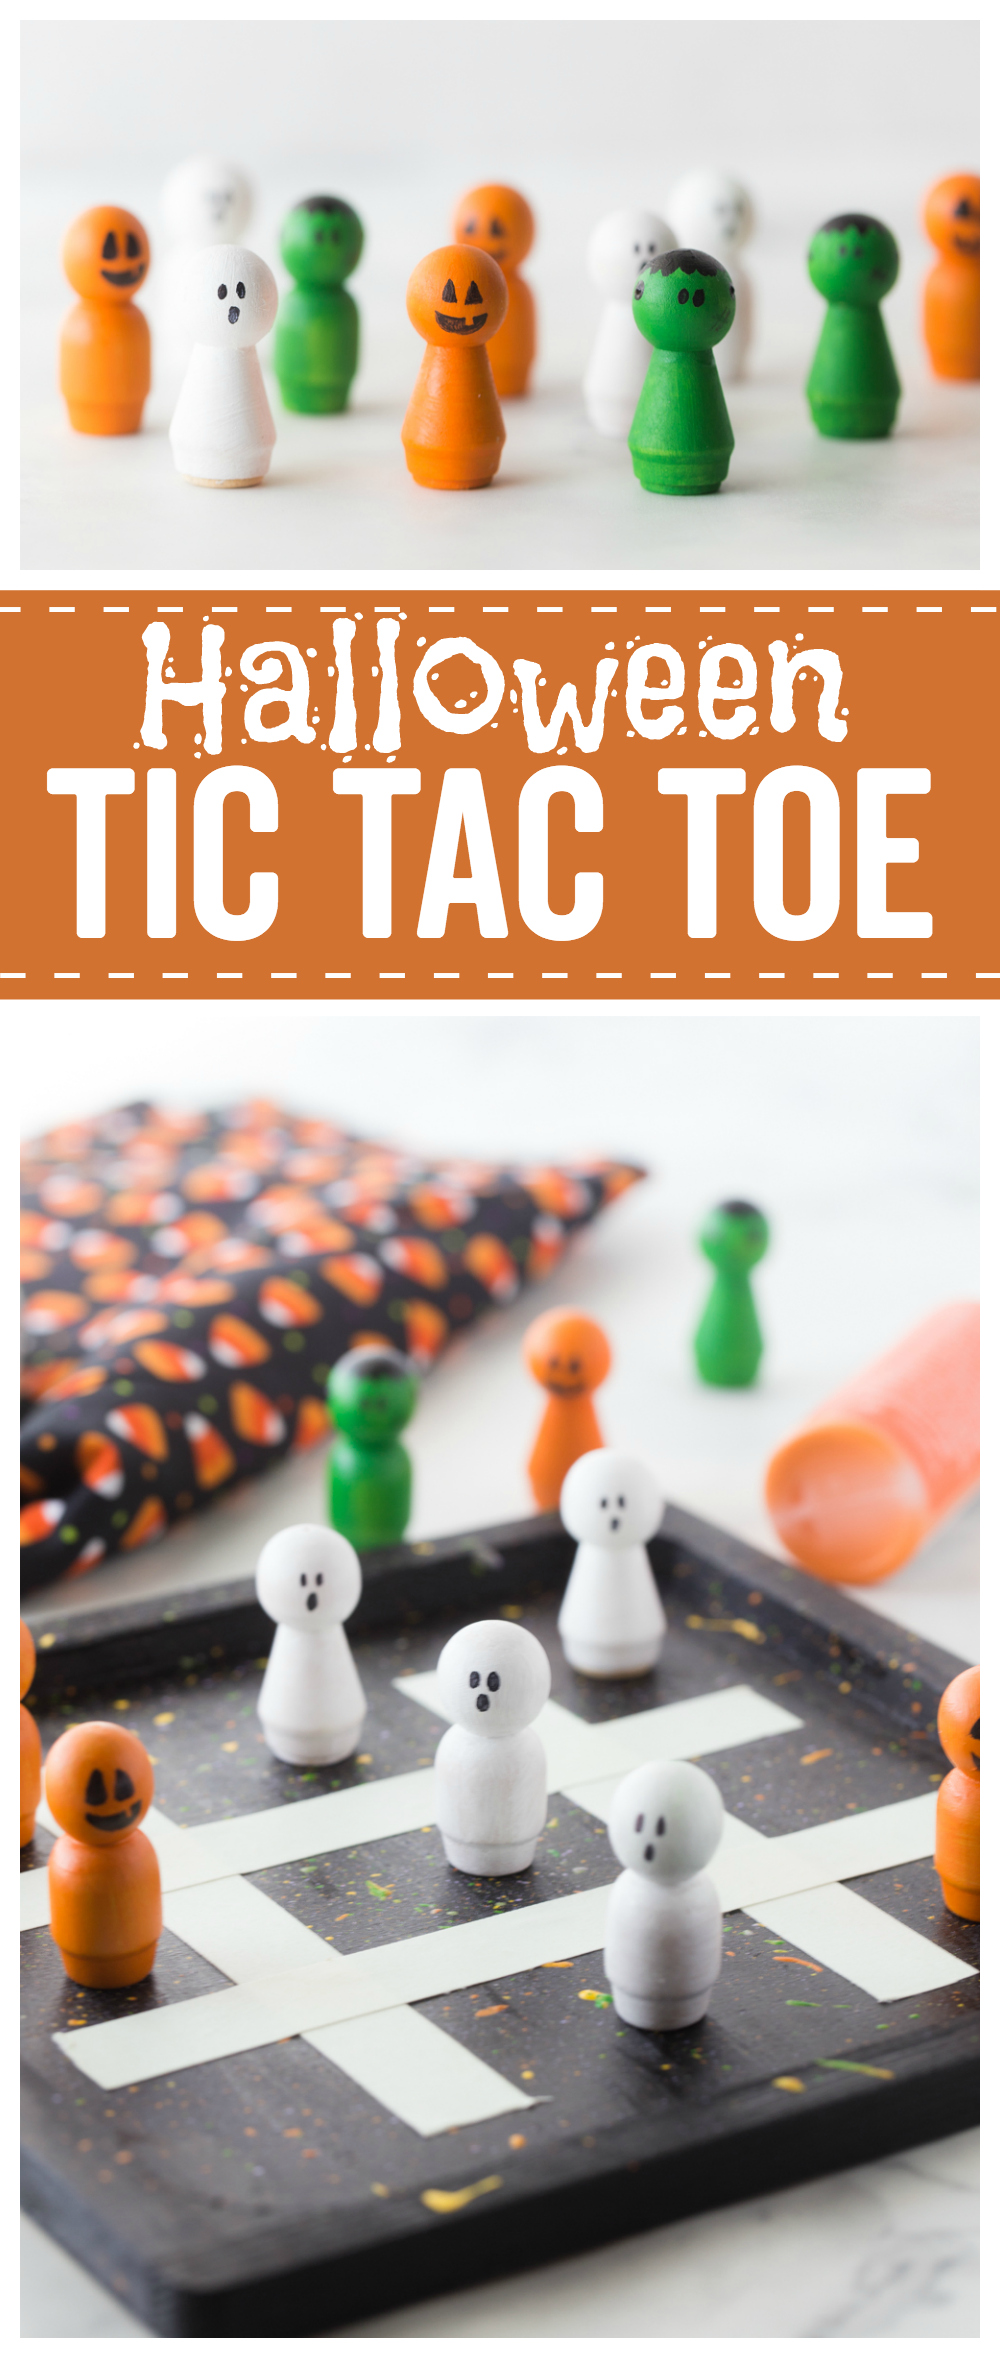 This Halloween Tic Tac Toe game is a fun activity for kids and adults alike.  You can enjoy it year after year!